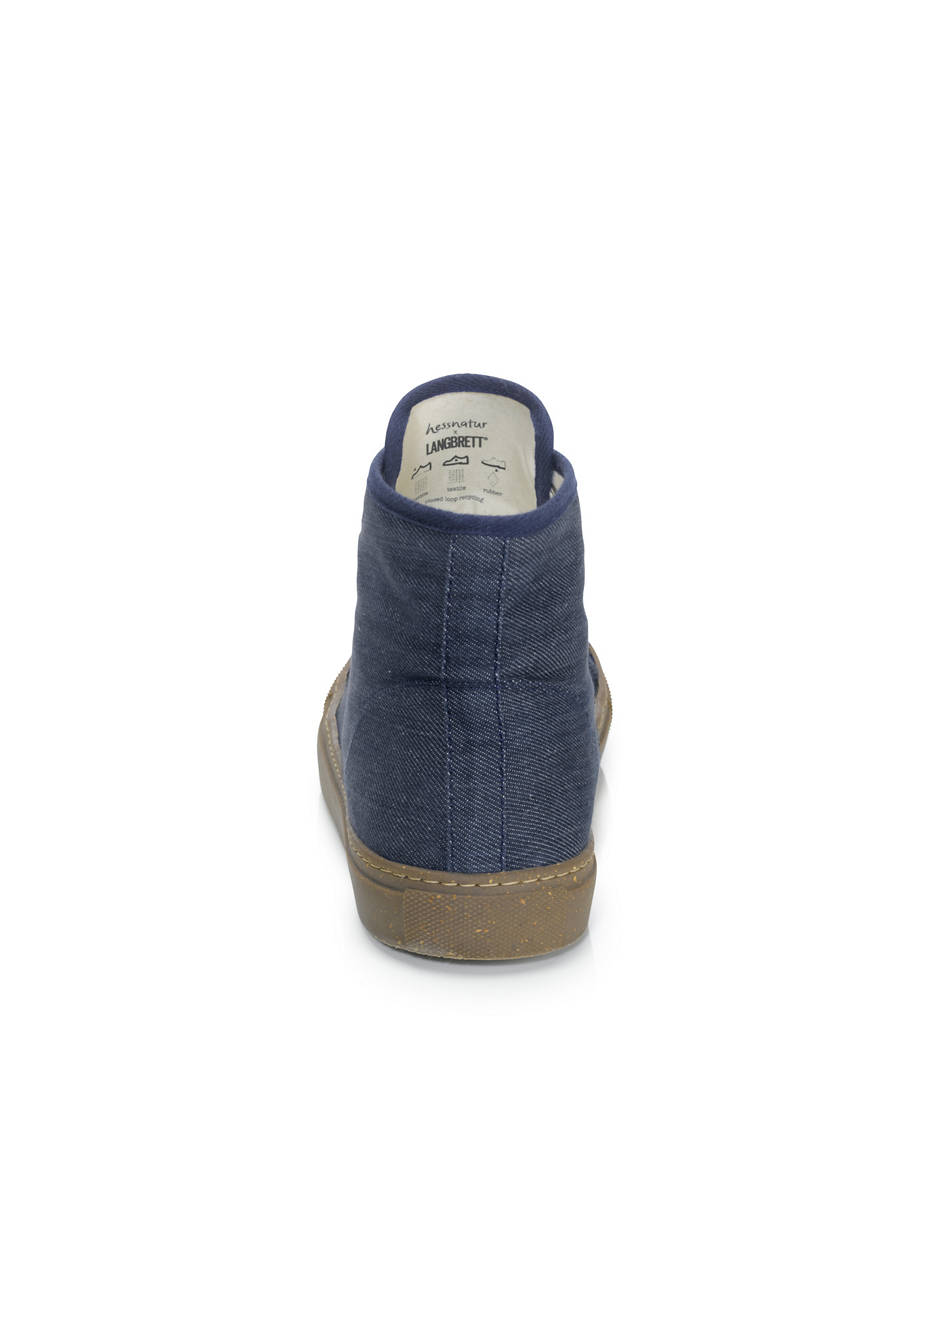 Bed recycling sneakers made from organic denim